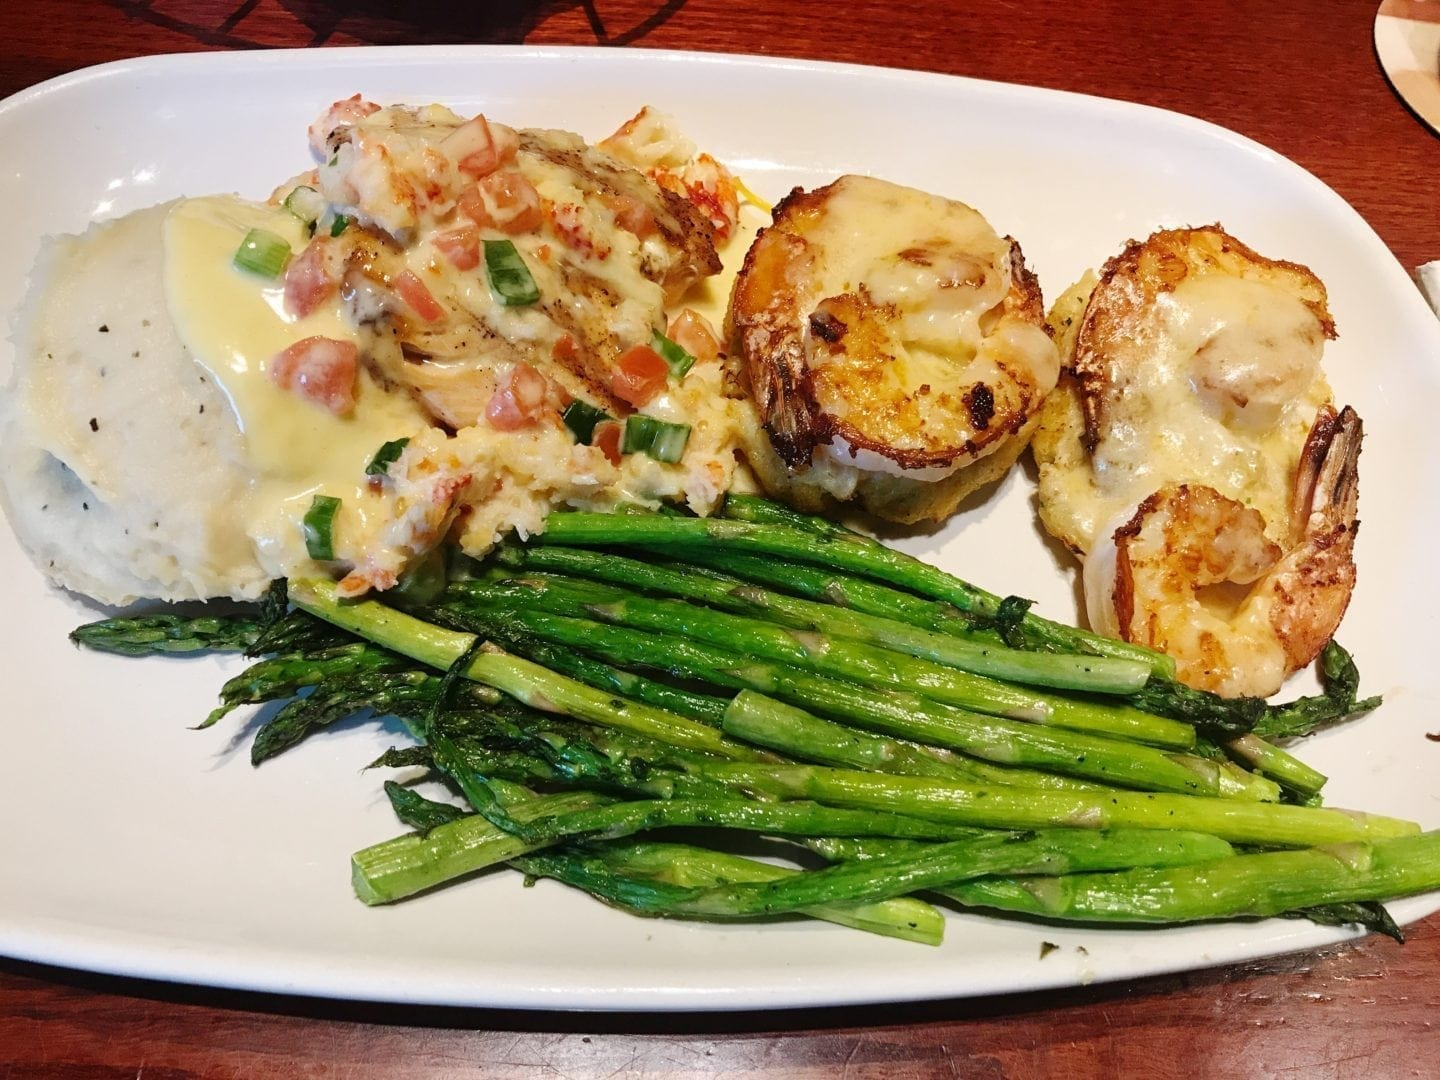 Red Lobster - Our Favorite Date Night Spot